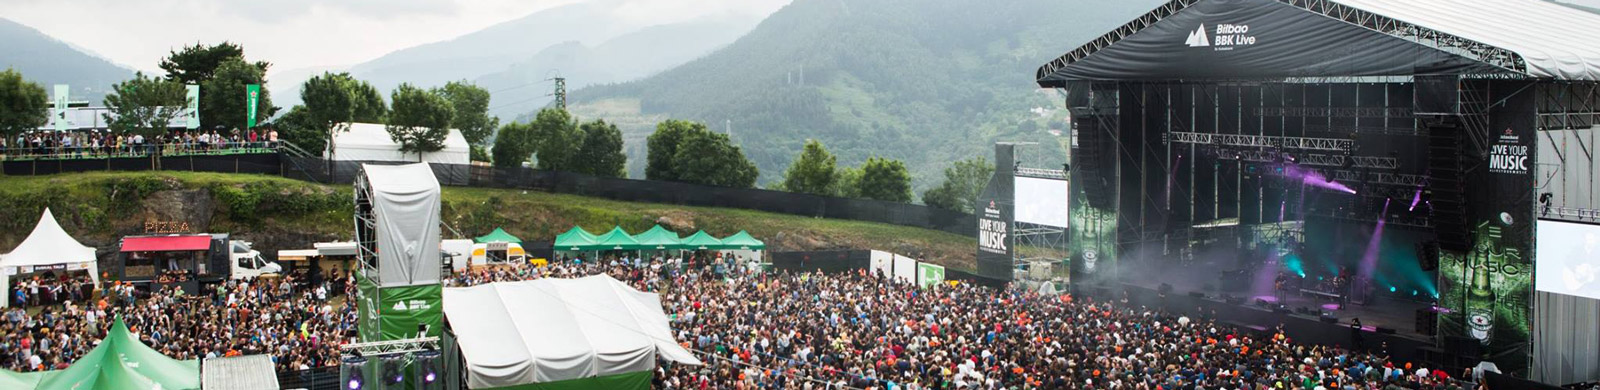 Bilbao BBK Live 2017: More Acts Announced